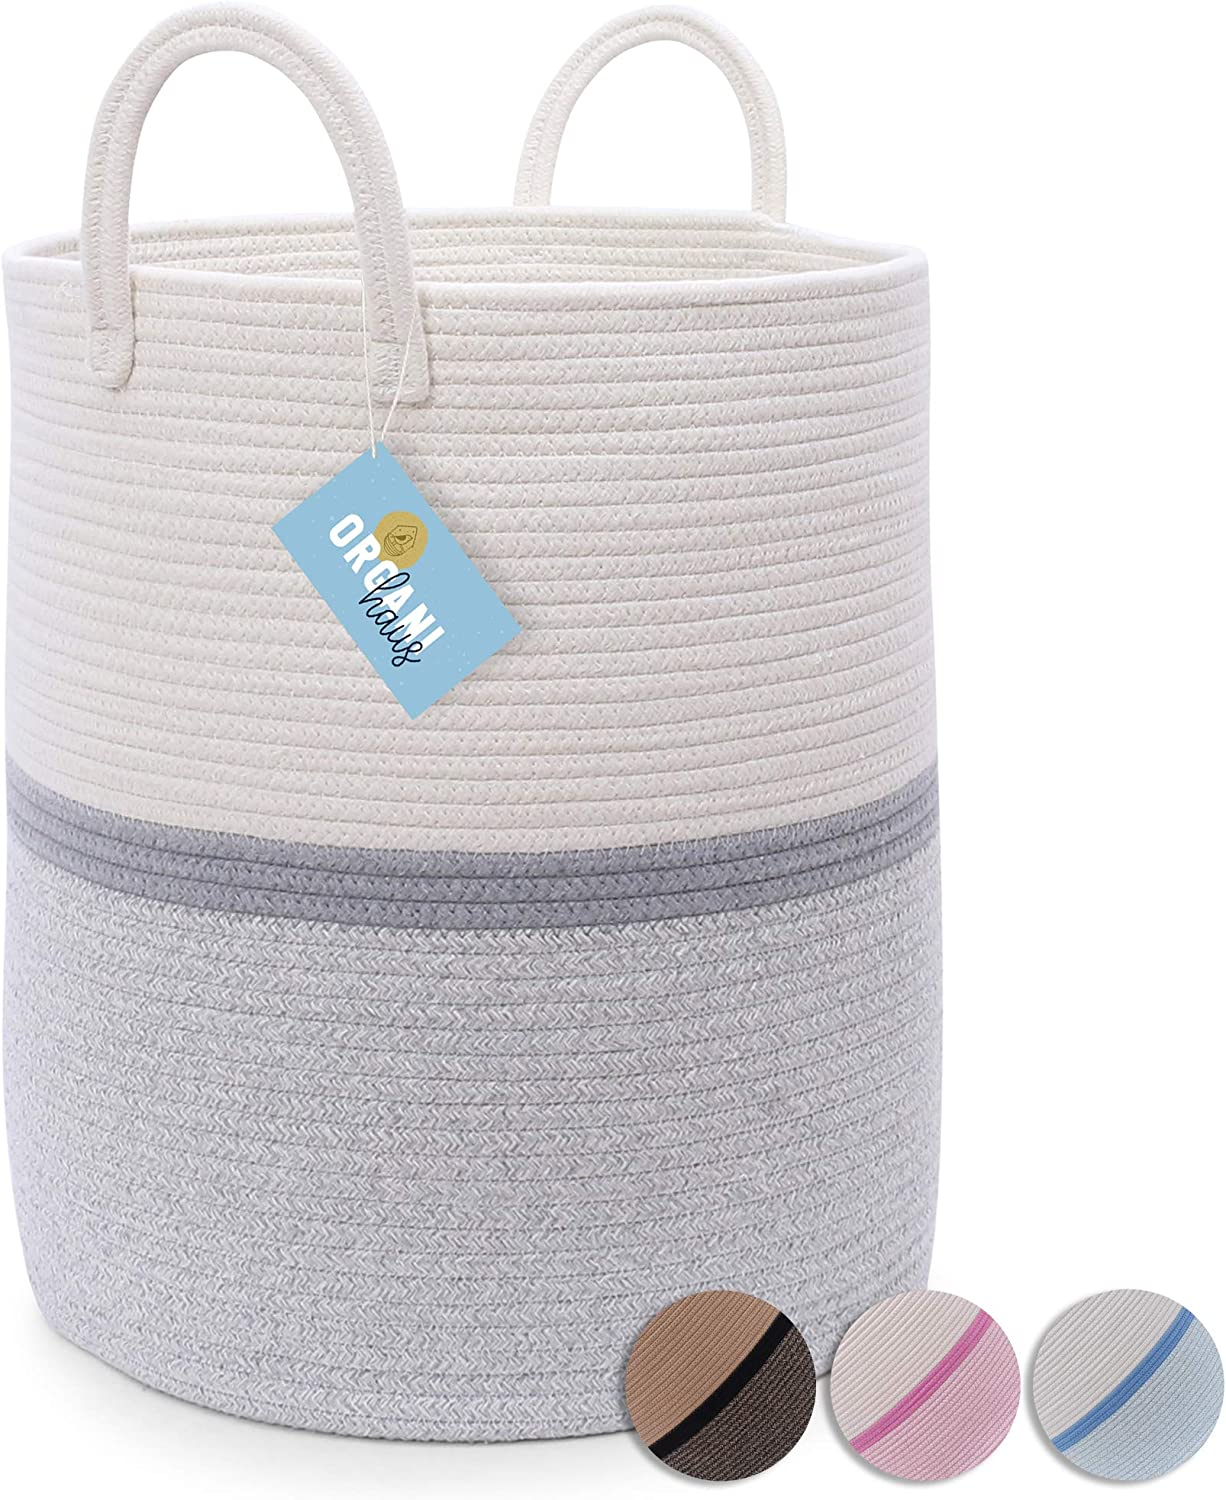 """OrganiHaus Large Grey Nursery Basket of Natural Cotton Rope Woven with Multiple Blended Colors 